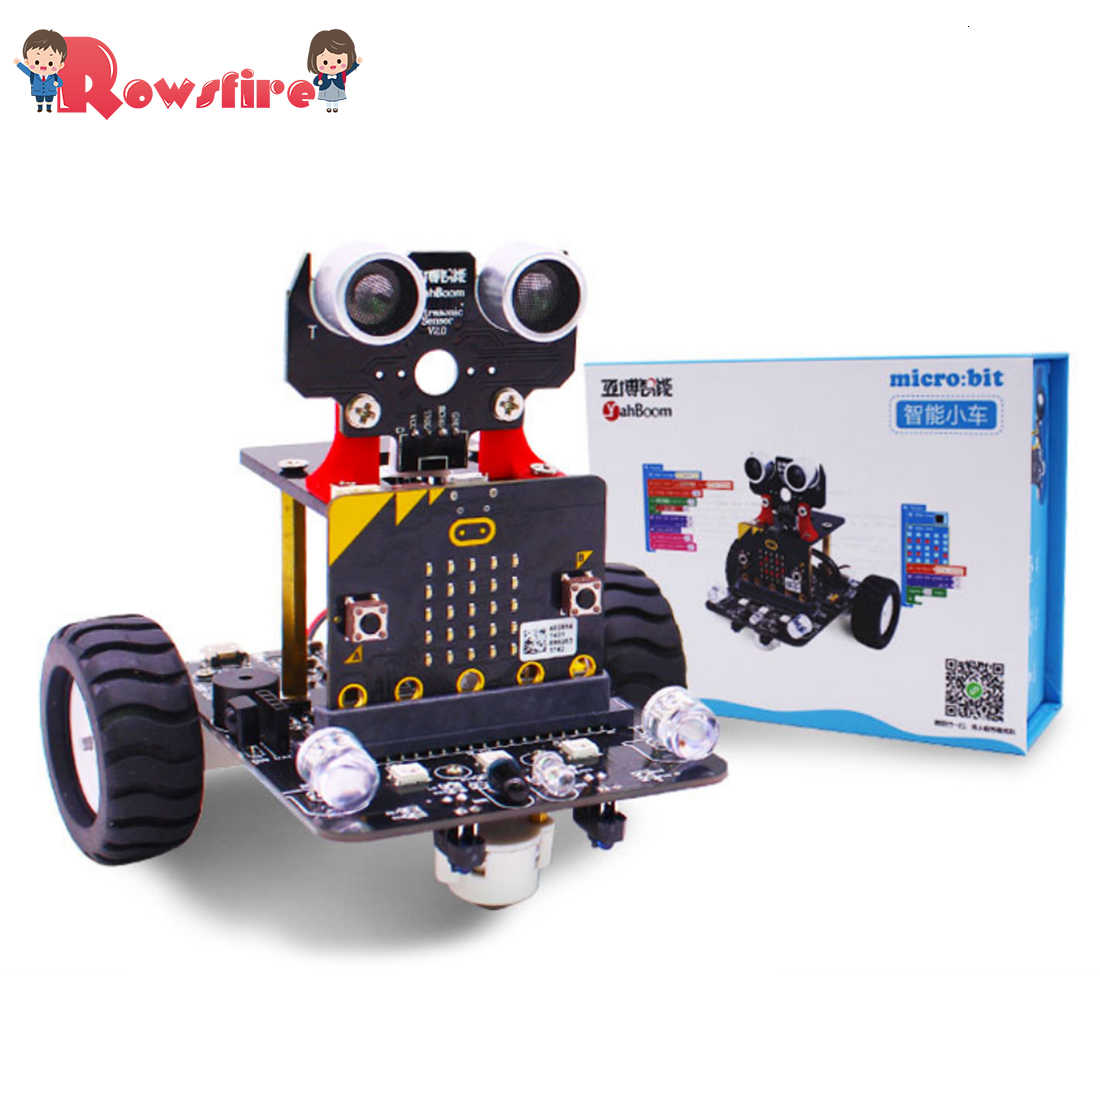 Graphical Programmable Robot Car With Bluetooth IR And Tracking Module Stem Steam Robot Car Toy For Micro:bit BBC Kit